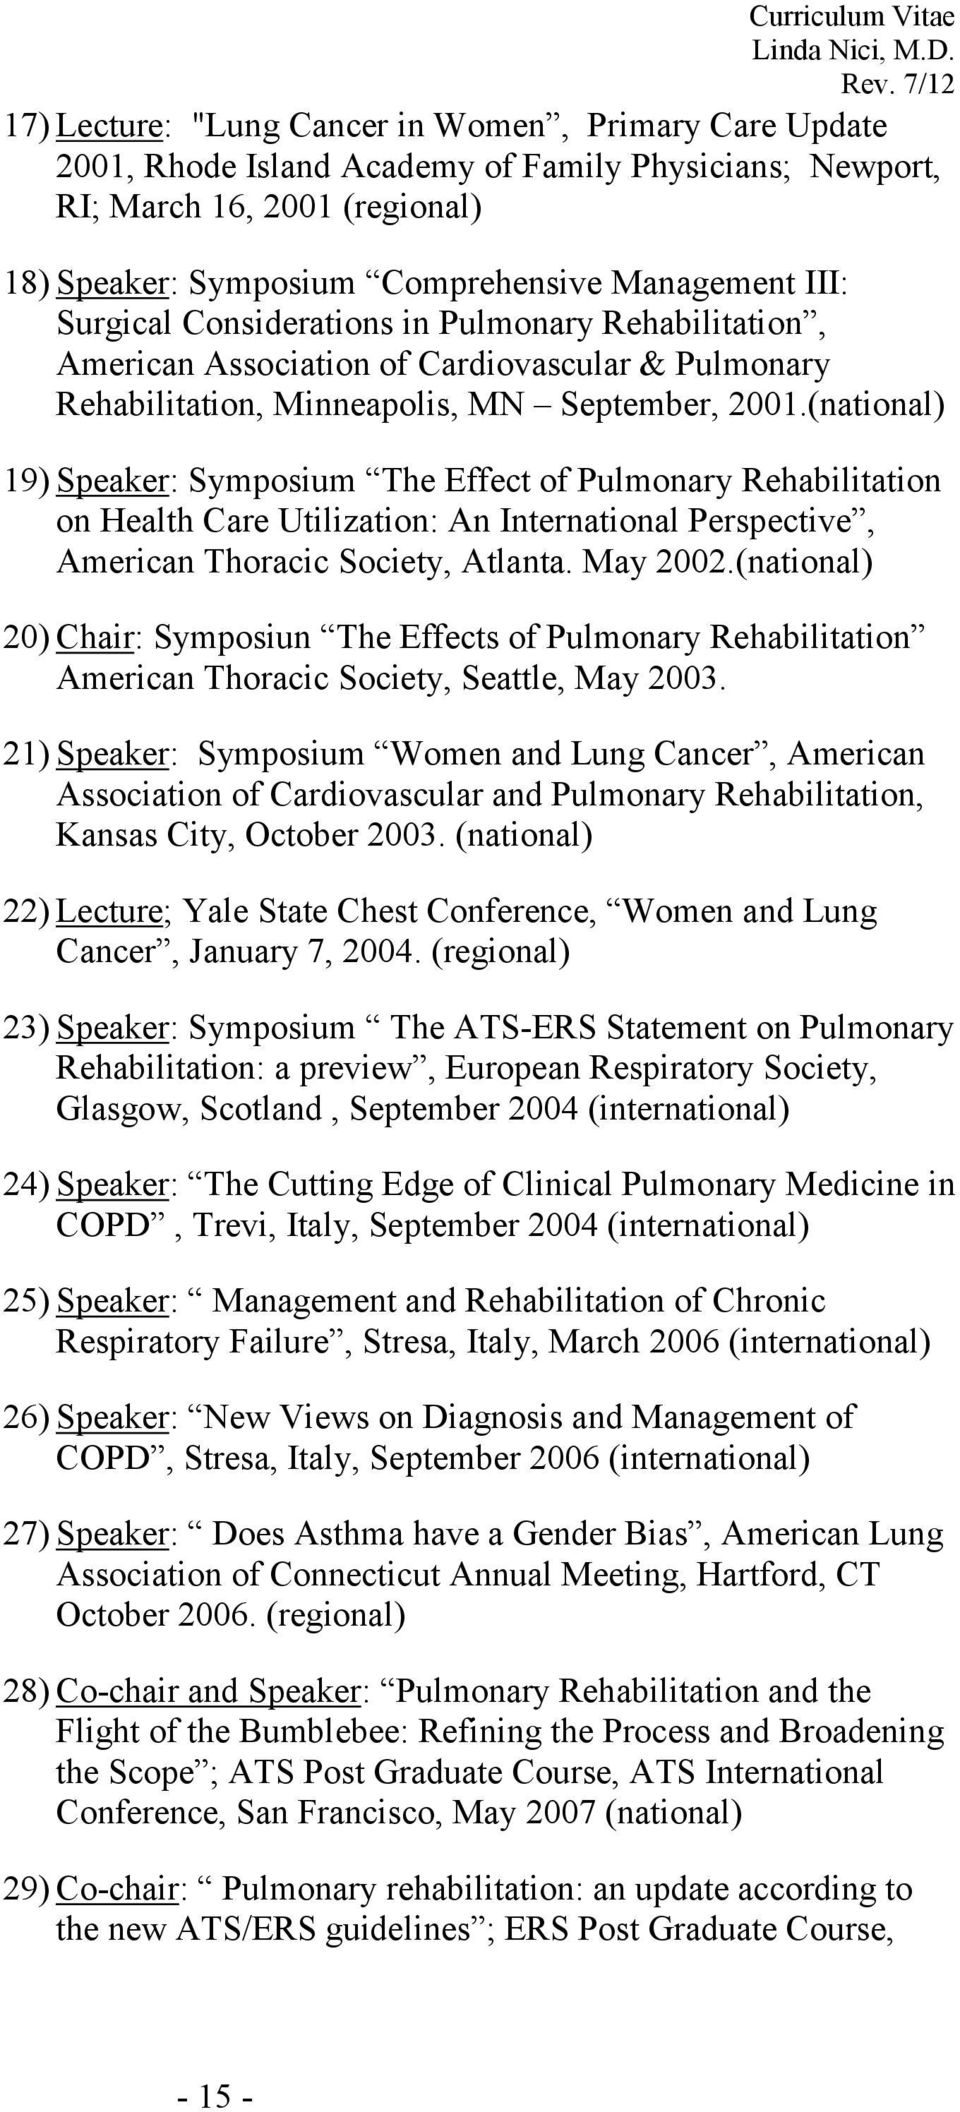 (national) 19) Speaker: Symposium The Effect of Pulmonary Rehabilitation on Health Care Utilization: An International Perspective, American Thoracic Society, Atlanta. May 2002.